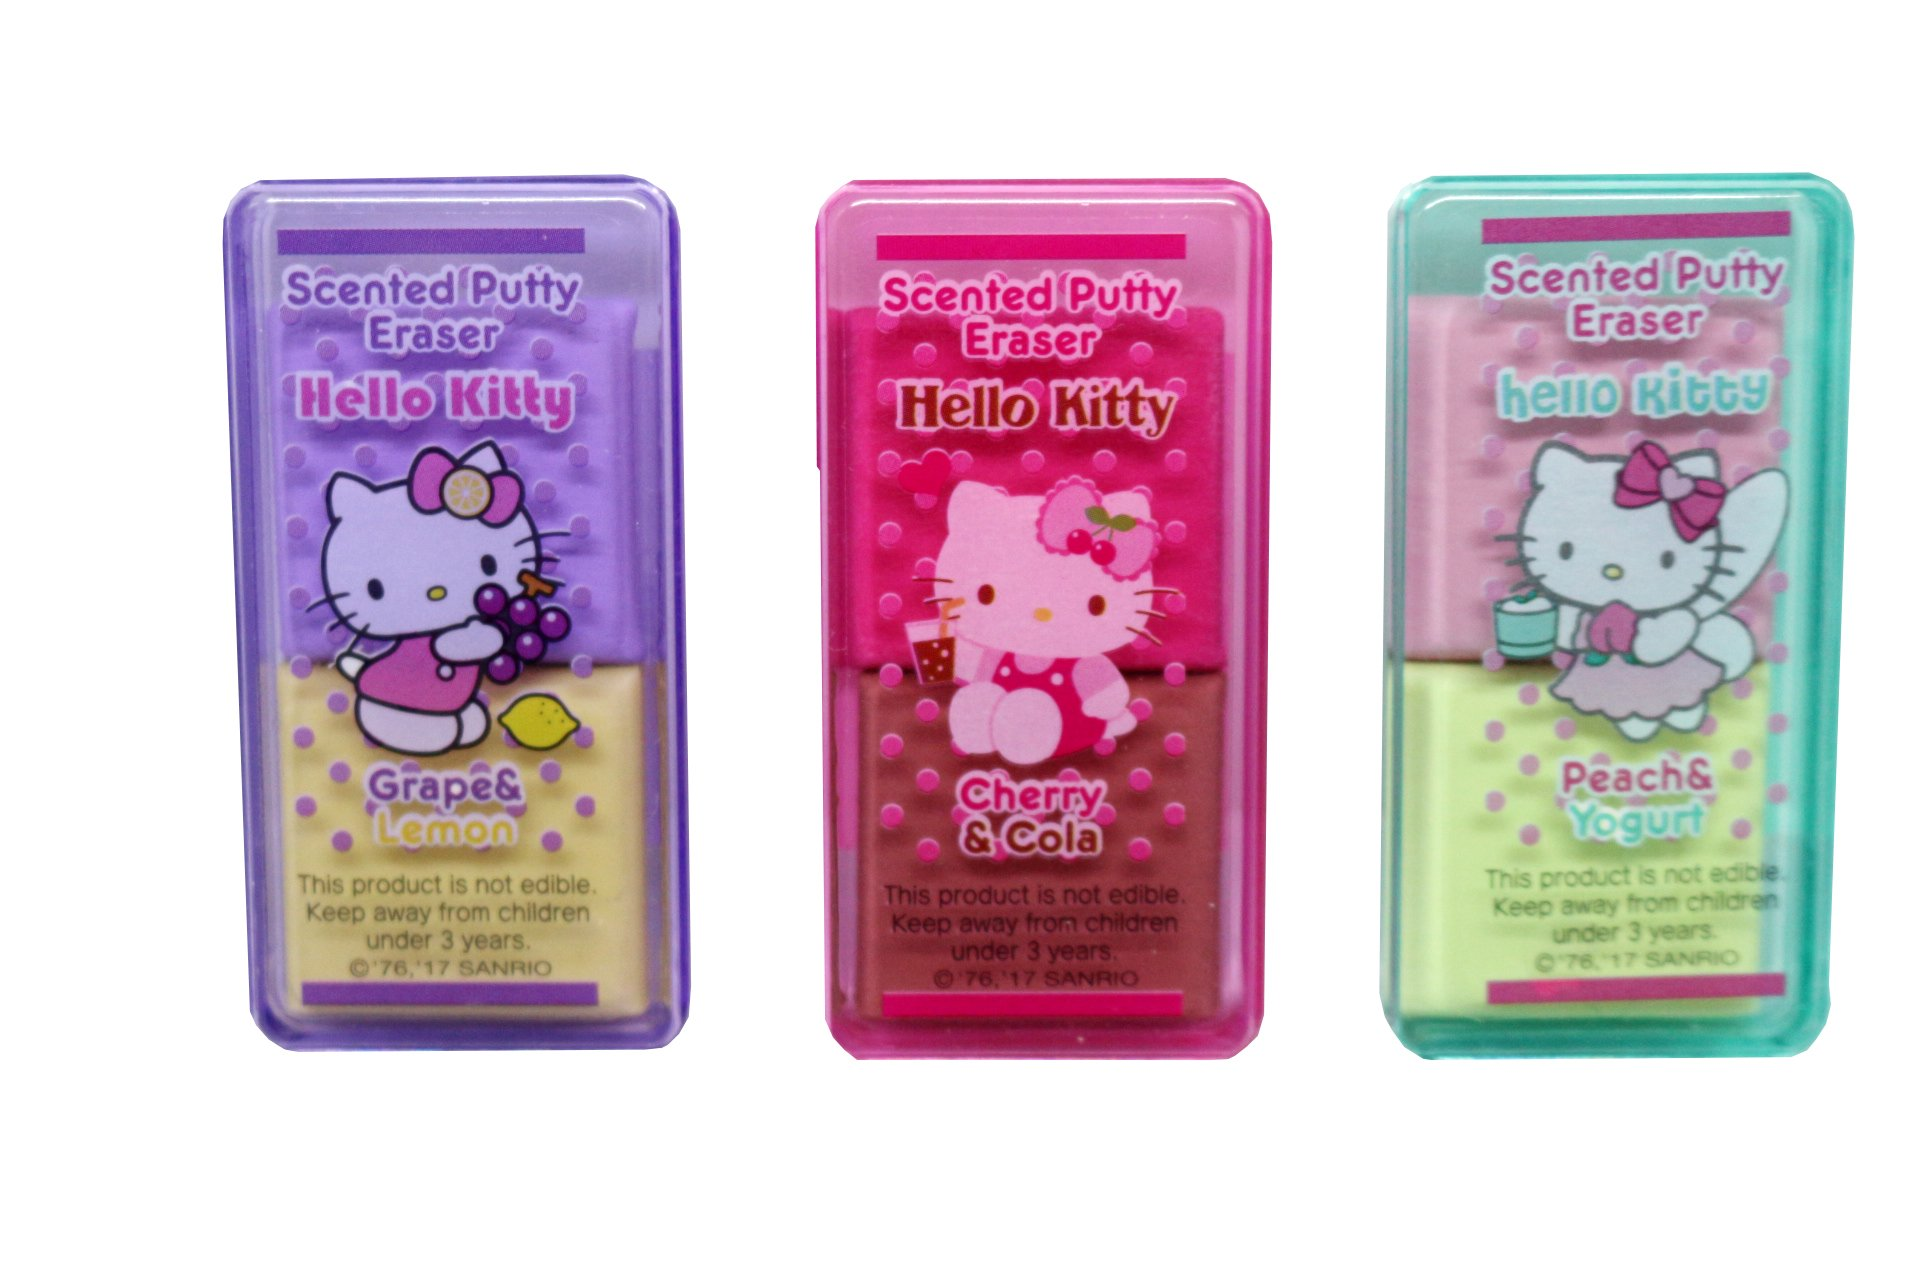 Hello Kitty Sanrio New Scented Colorful Putty Eraser Set of 3 Different Fragrances. (Juicy flavors 1)